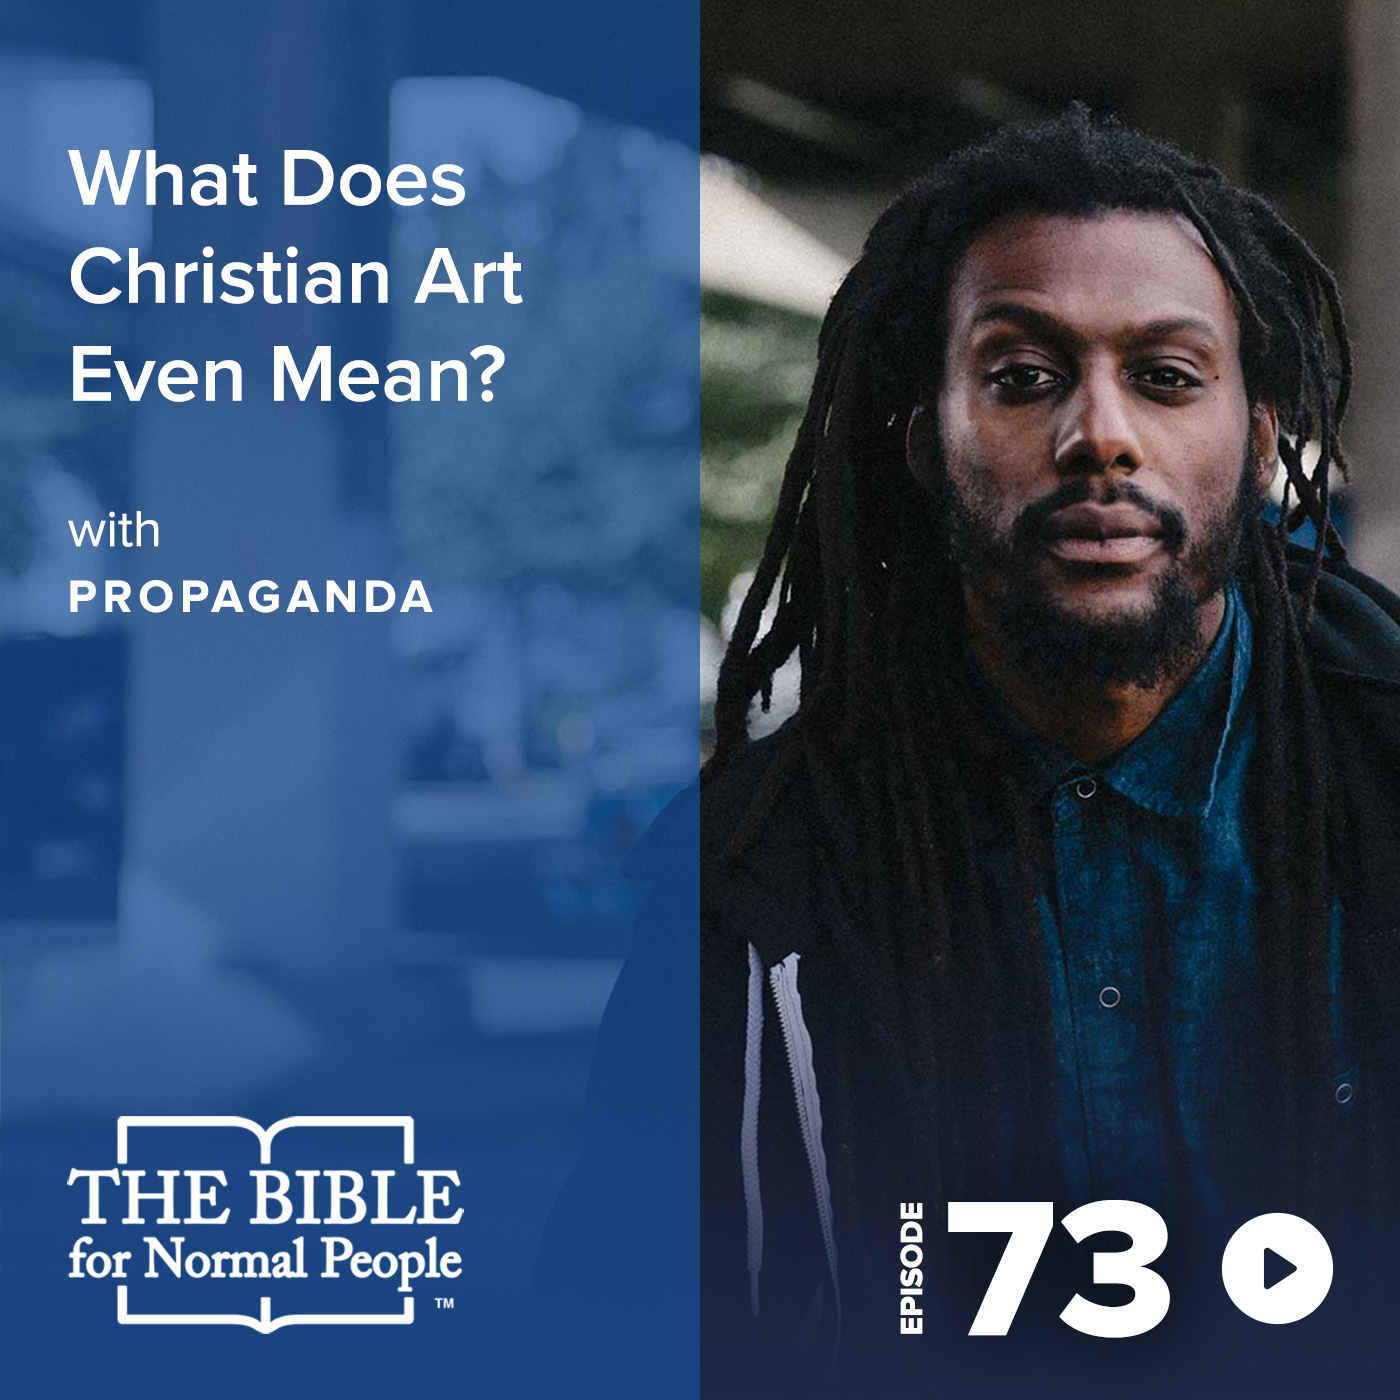 Episode 73: Propaganda - What Does Christian Art Even Mean?